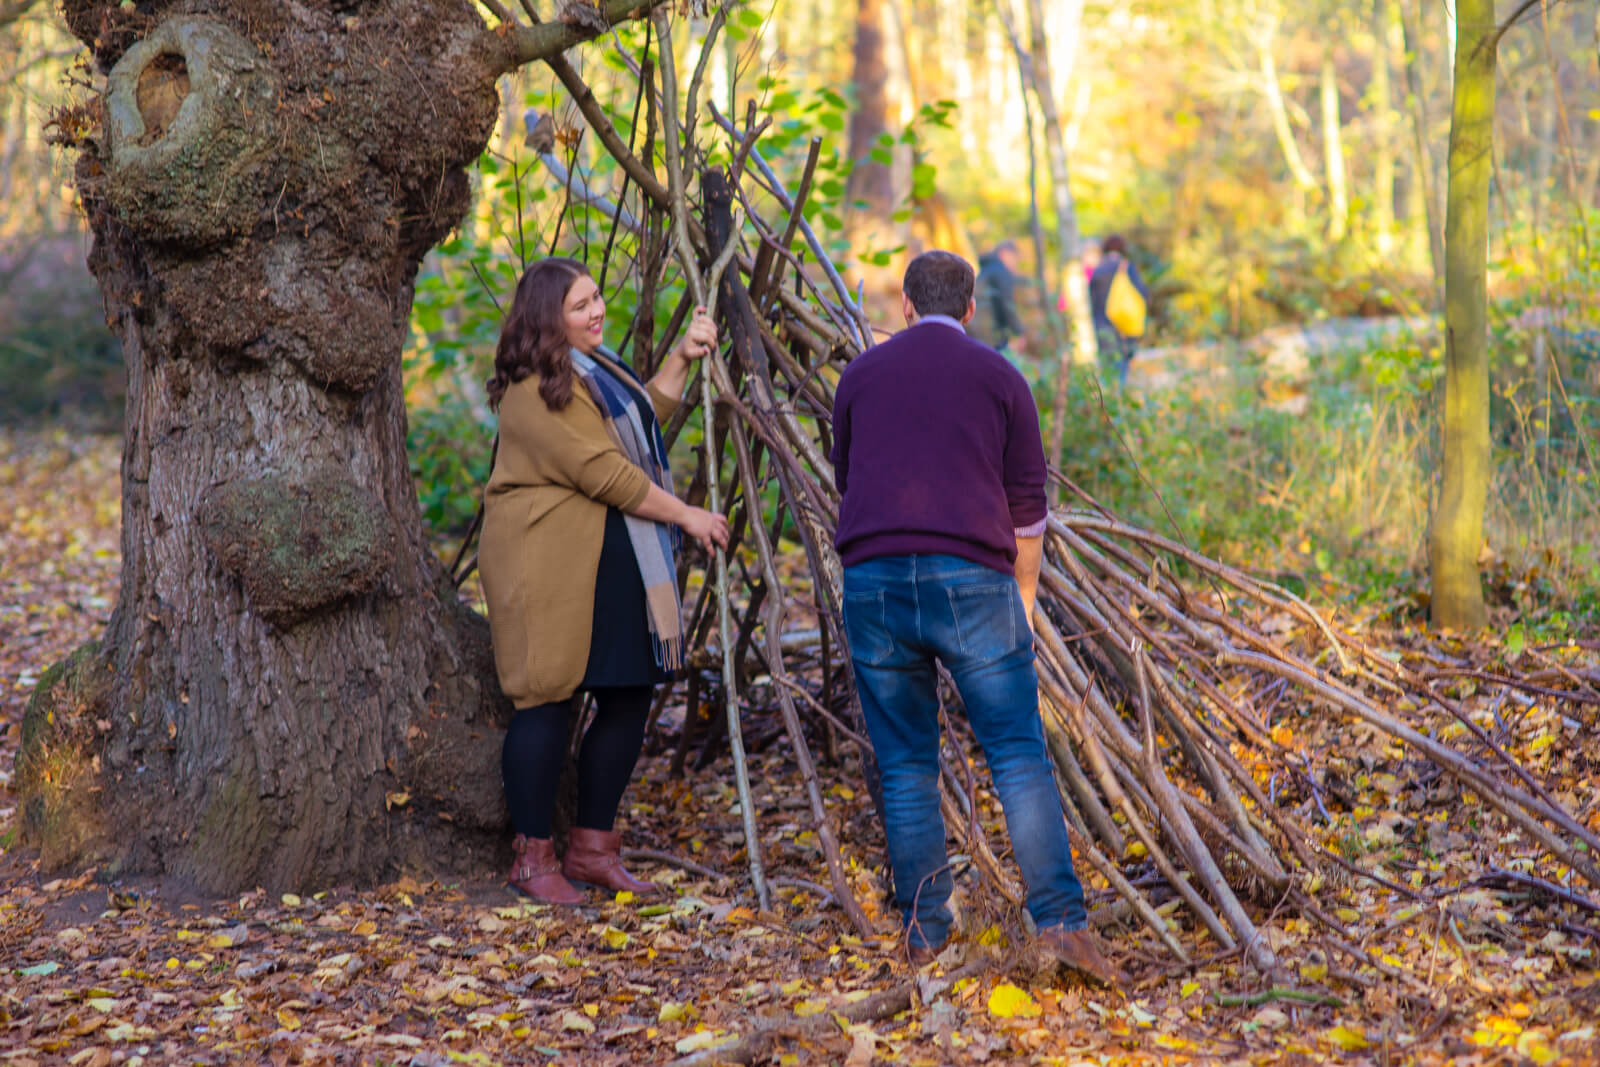 Engaged couple having fun builing a woodland den out of fallen branches